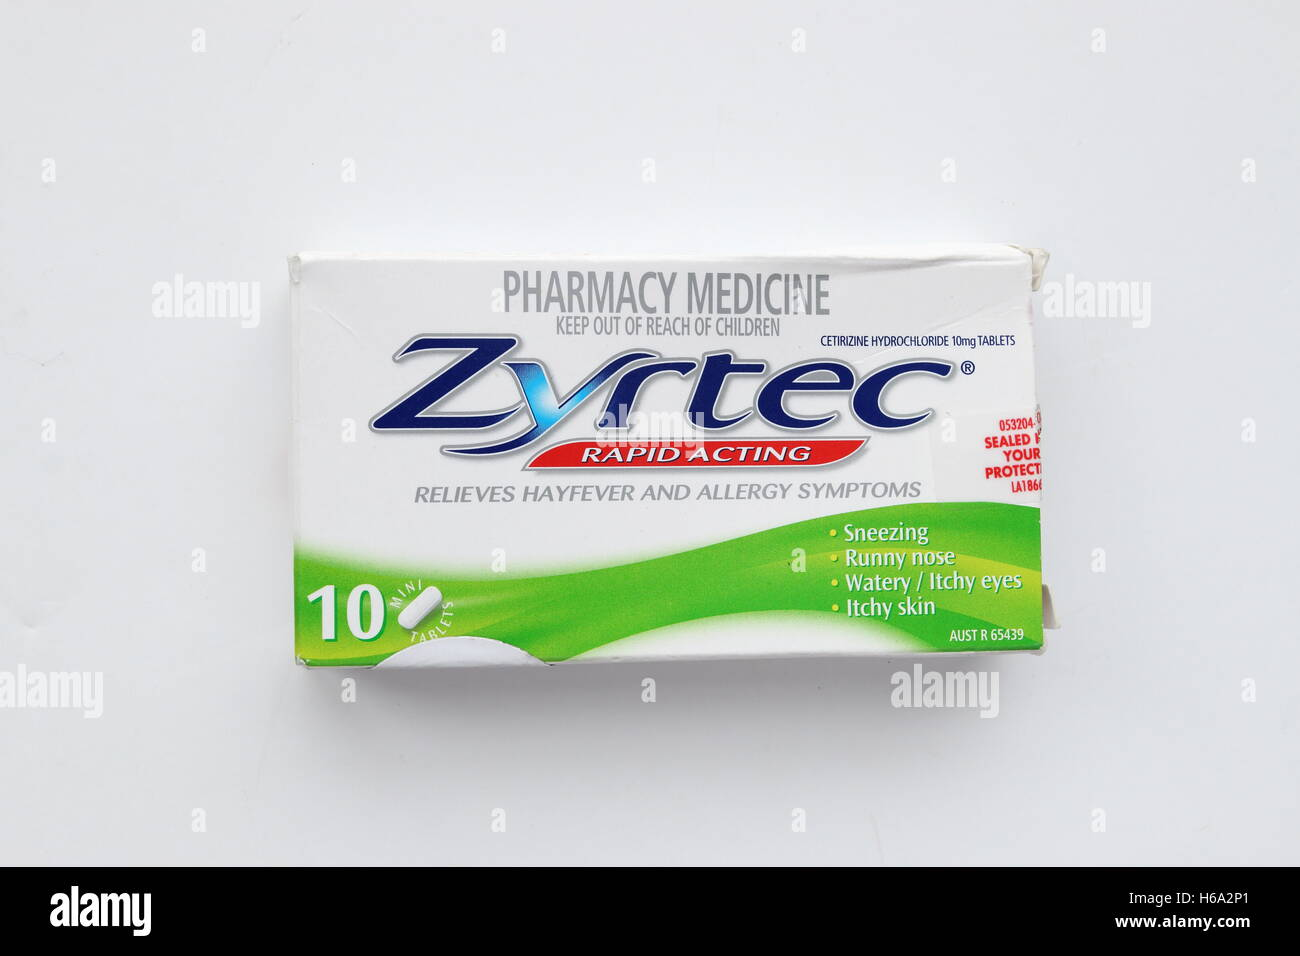 Zyrtec Allergies Relief Isolated Against White Background Stock